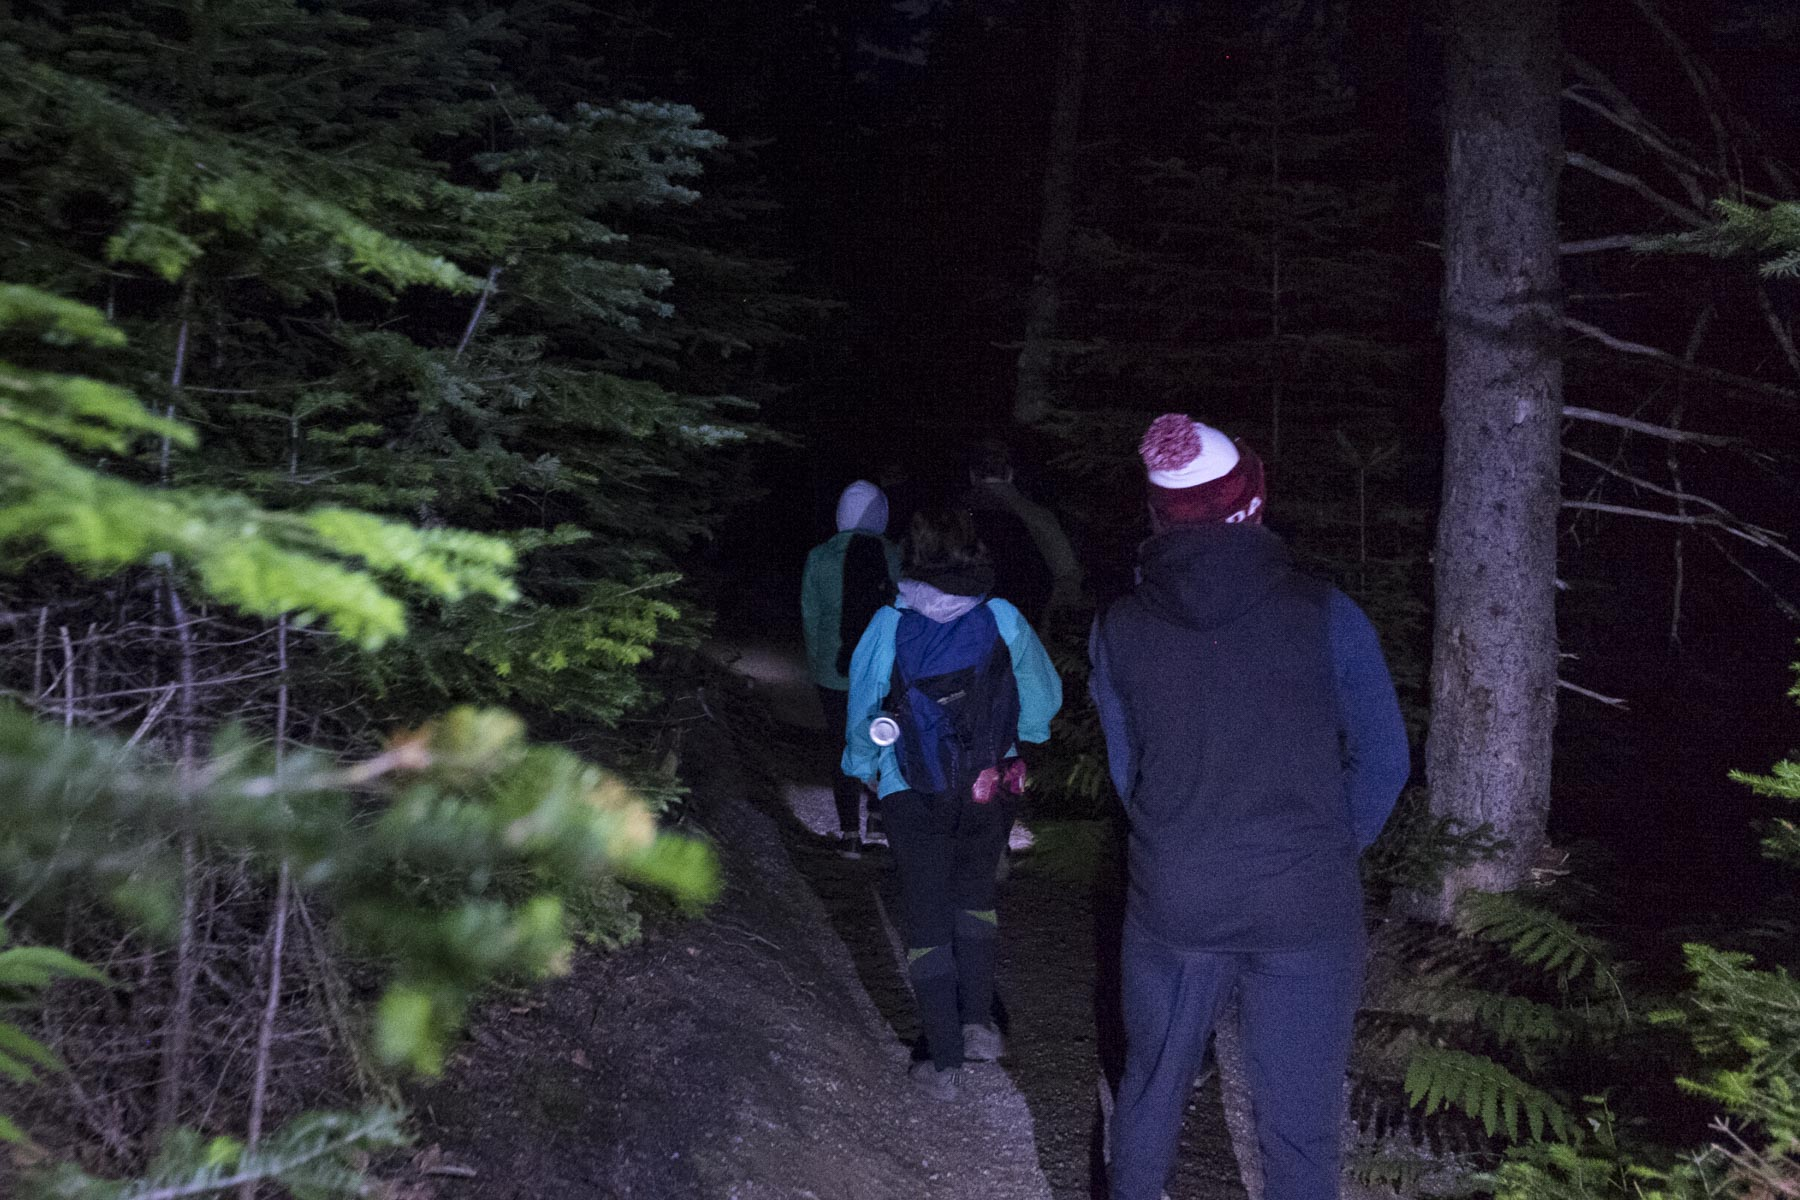 Flashlight in hand, Her Excellency joined local residents and tourists on the hike.